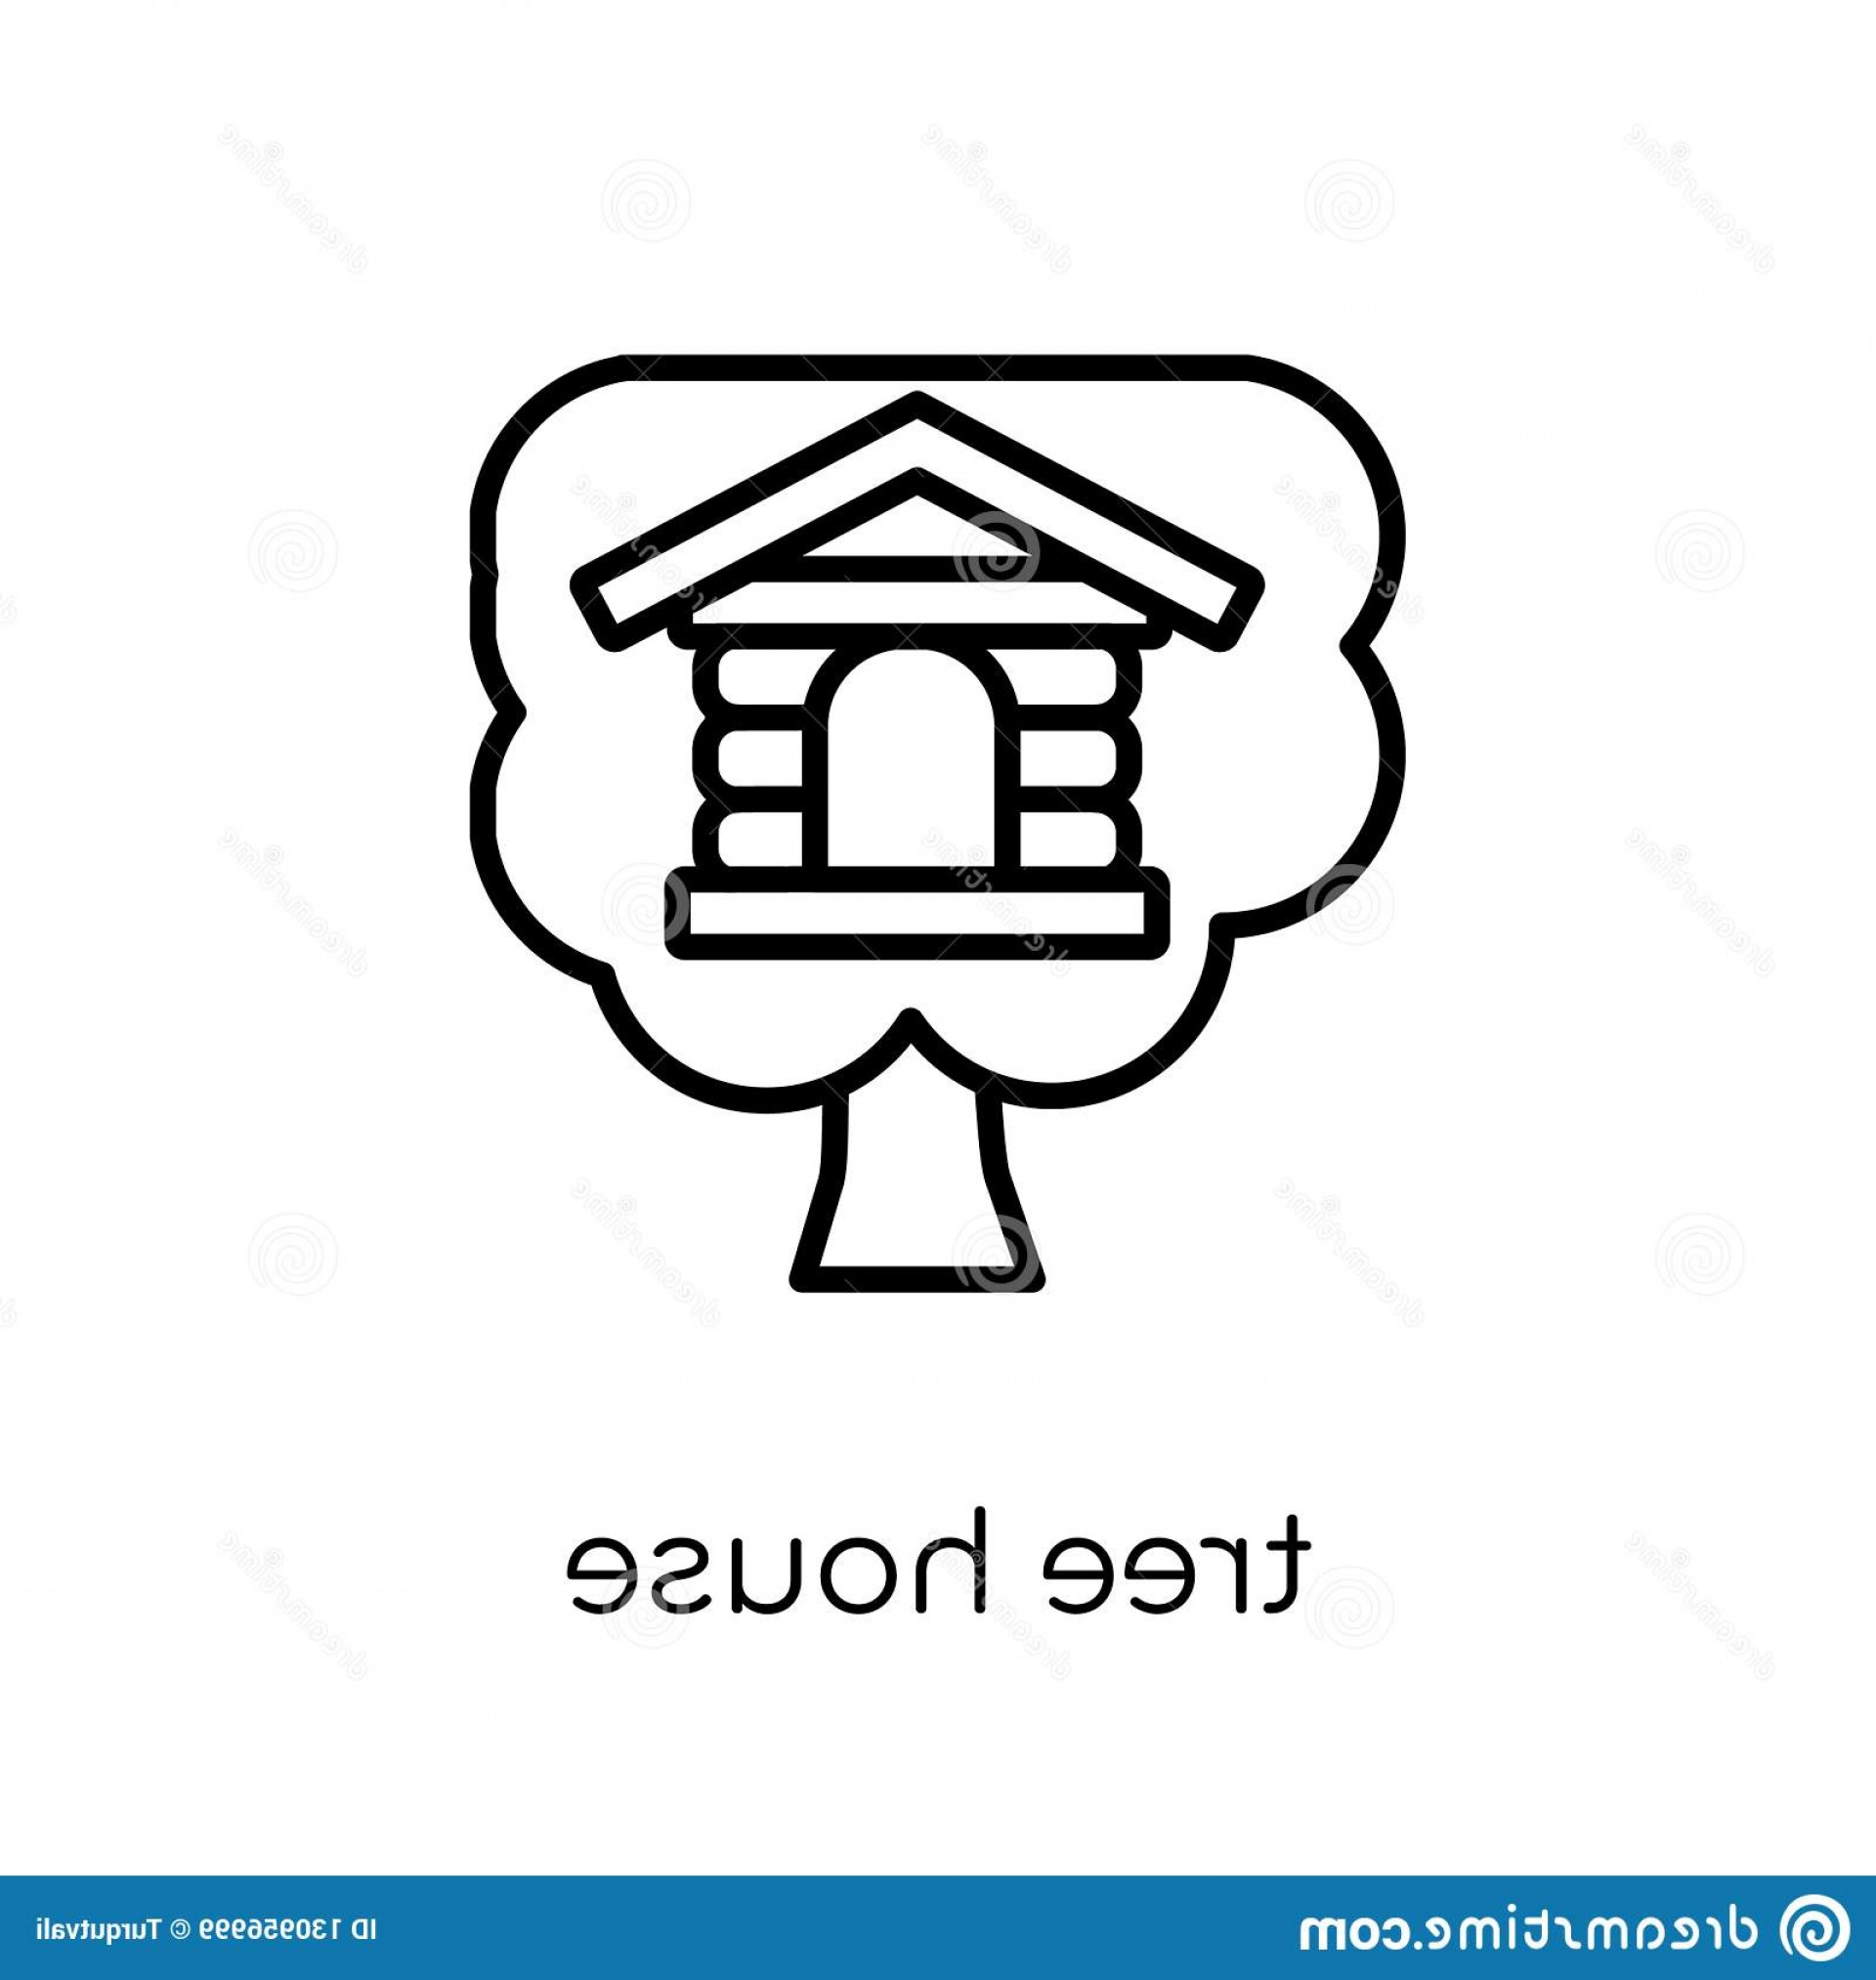 Vector Modern Tree House: Tree House Icon Real Estate Collection Trendy Modern Flat Linear Vector White Background Thin Line Outline Illustration Image